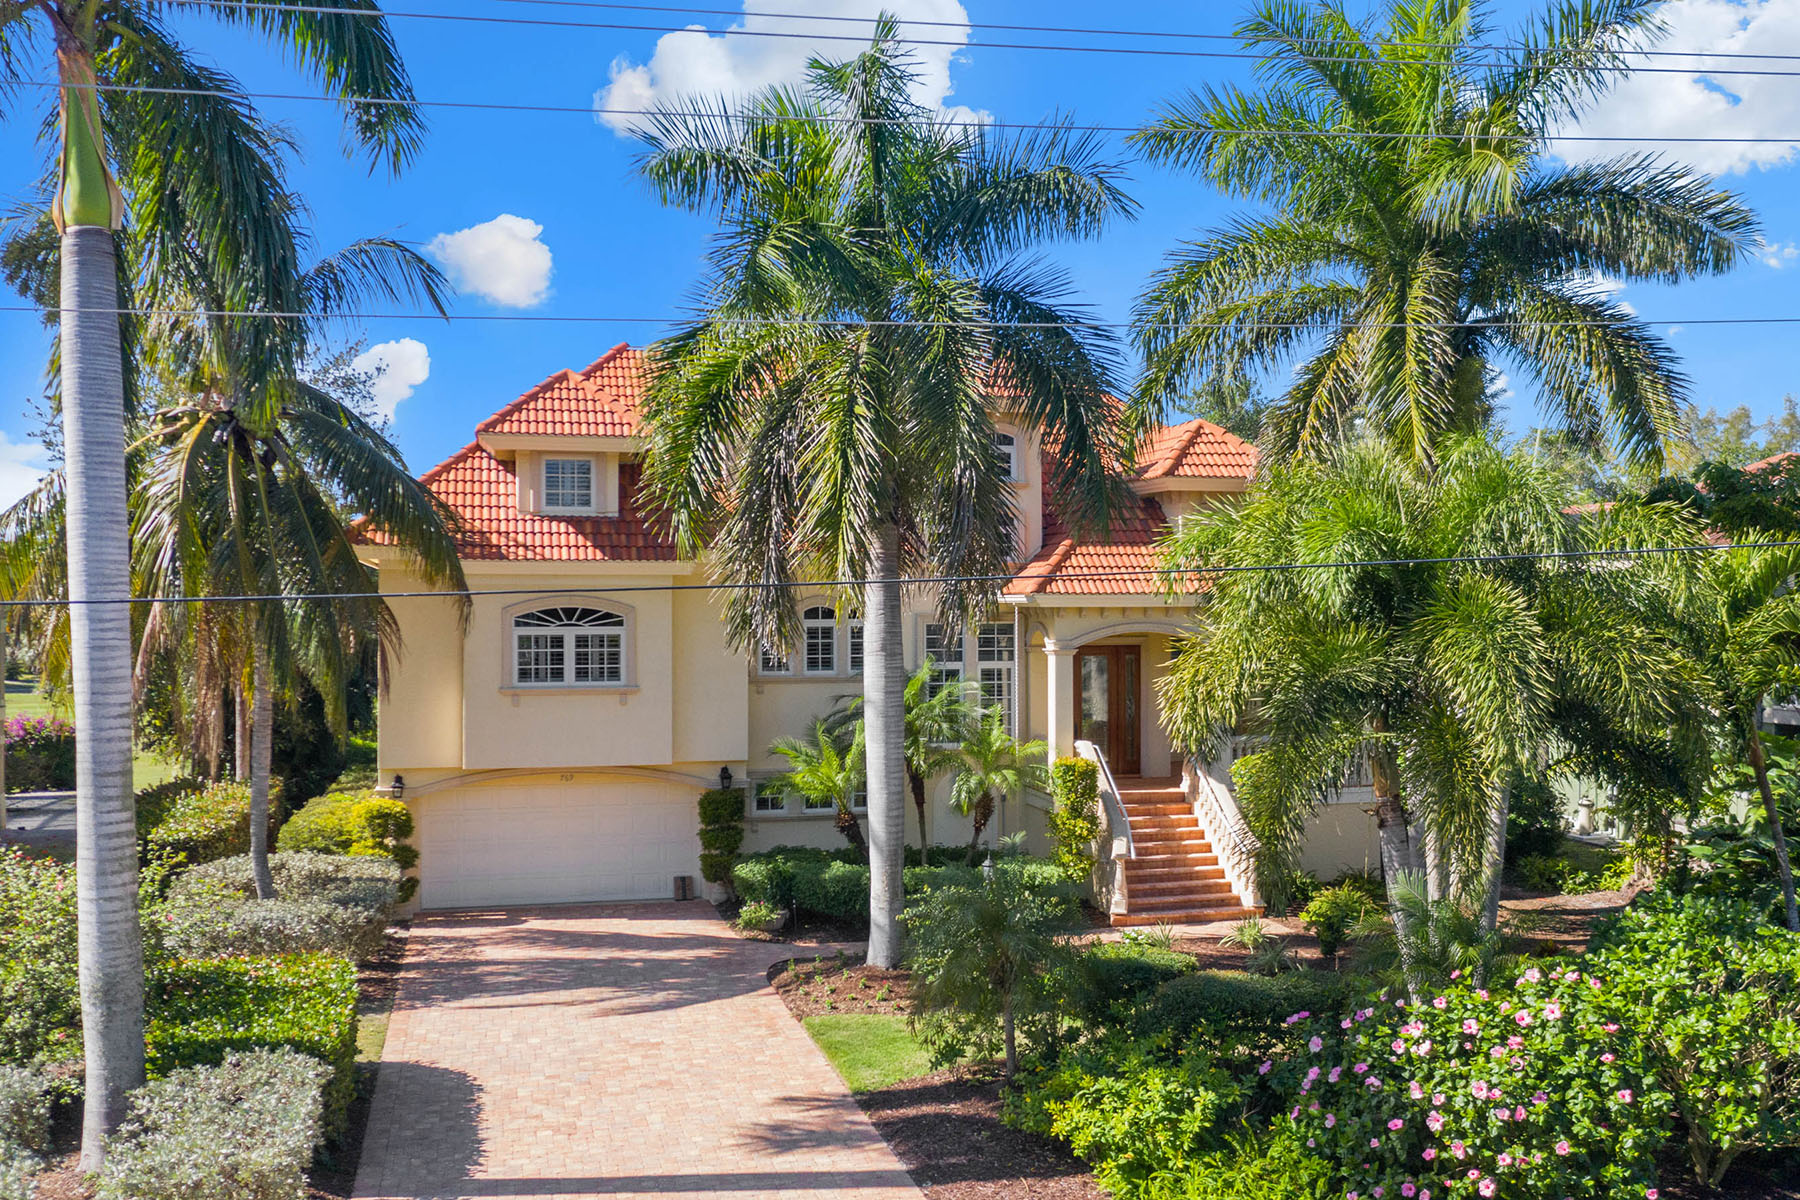 Single Family Homes for Sale at BEACHVIEW COUNTRY CLUB ESTATES 769 Pyrula Ave, Sanibel, Florida 33957 United States